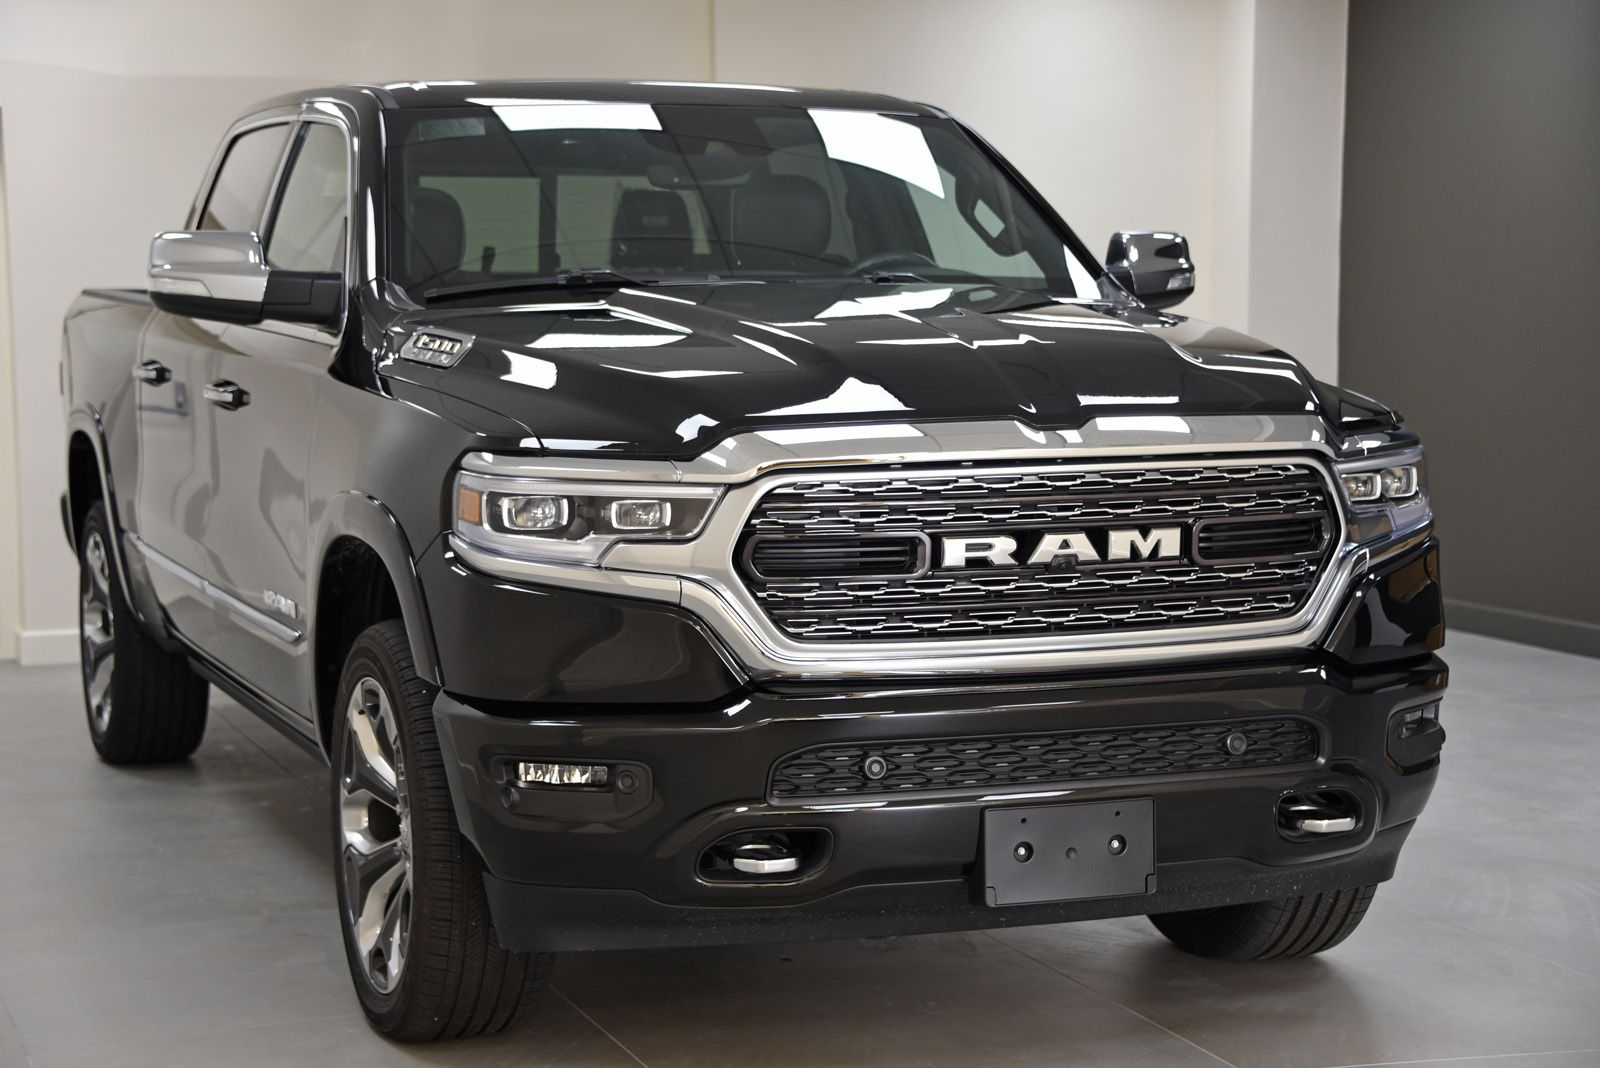 Official Dealers For Dodge And Ram New Rams In Stock And To Order 2019ram Ramlimited Blackram Dodge Ram American Pickup Trucks Dodge